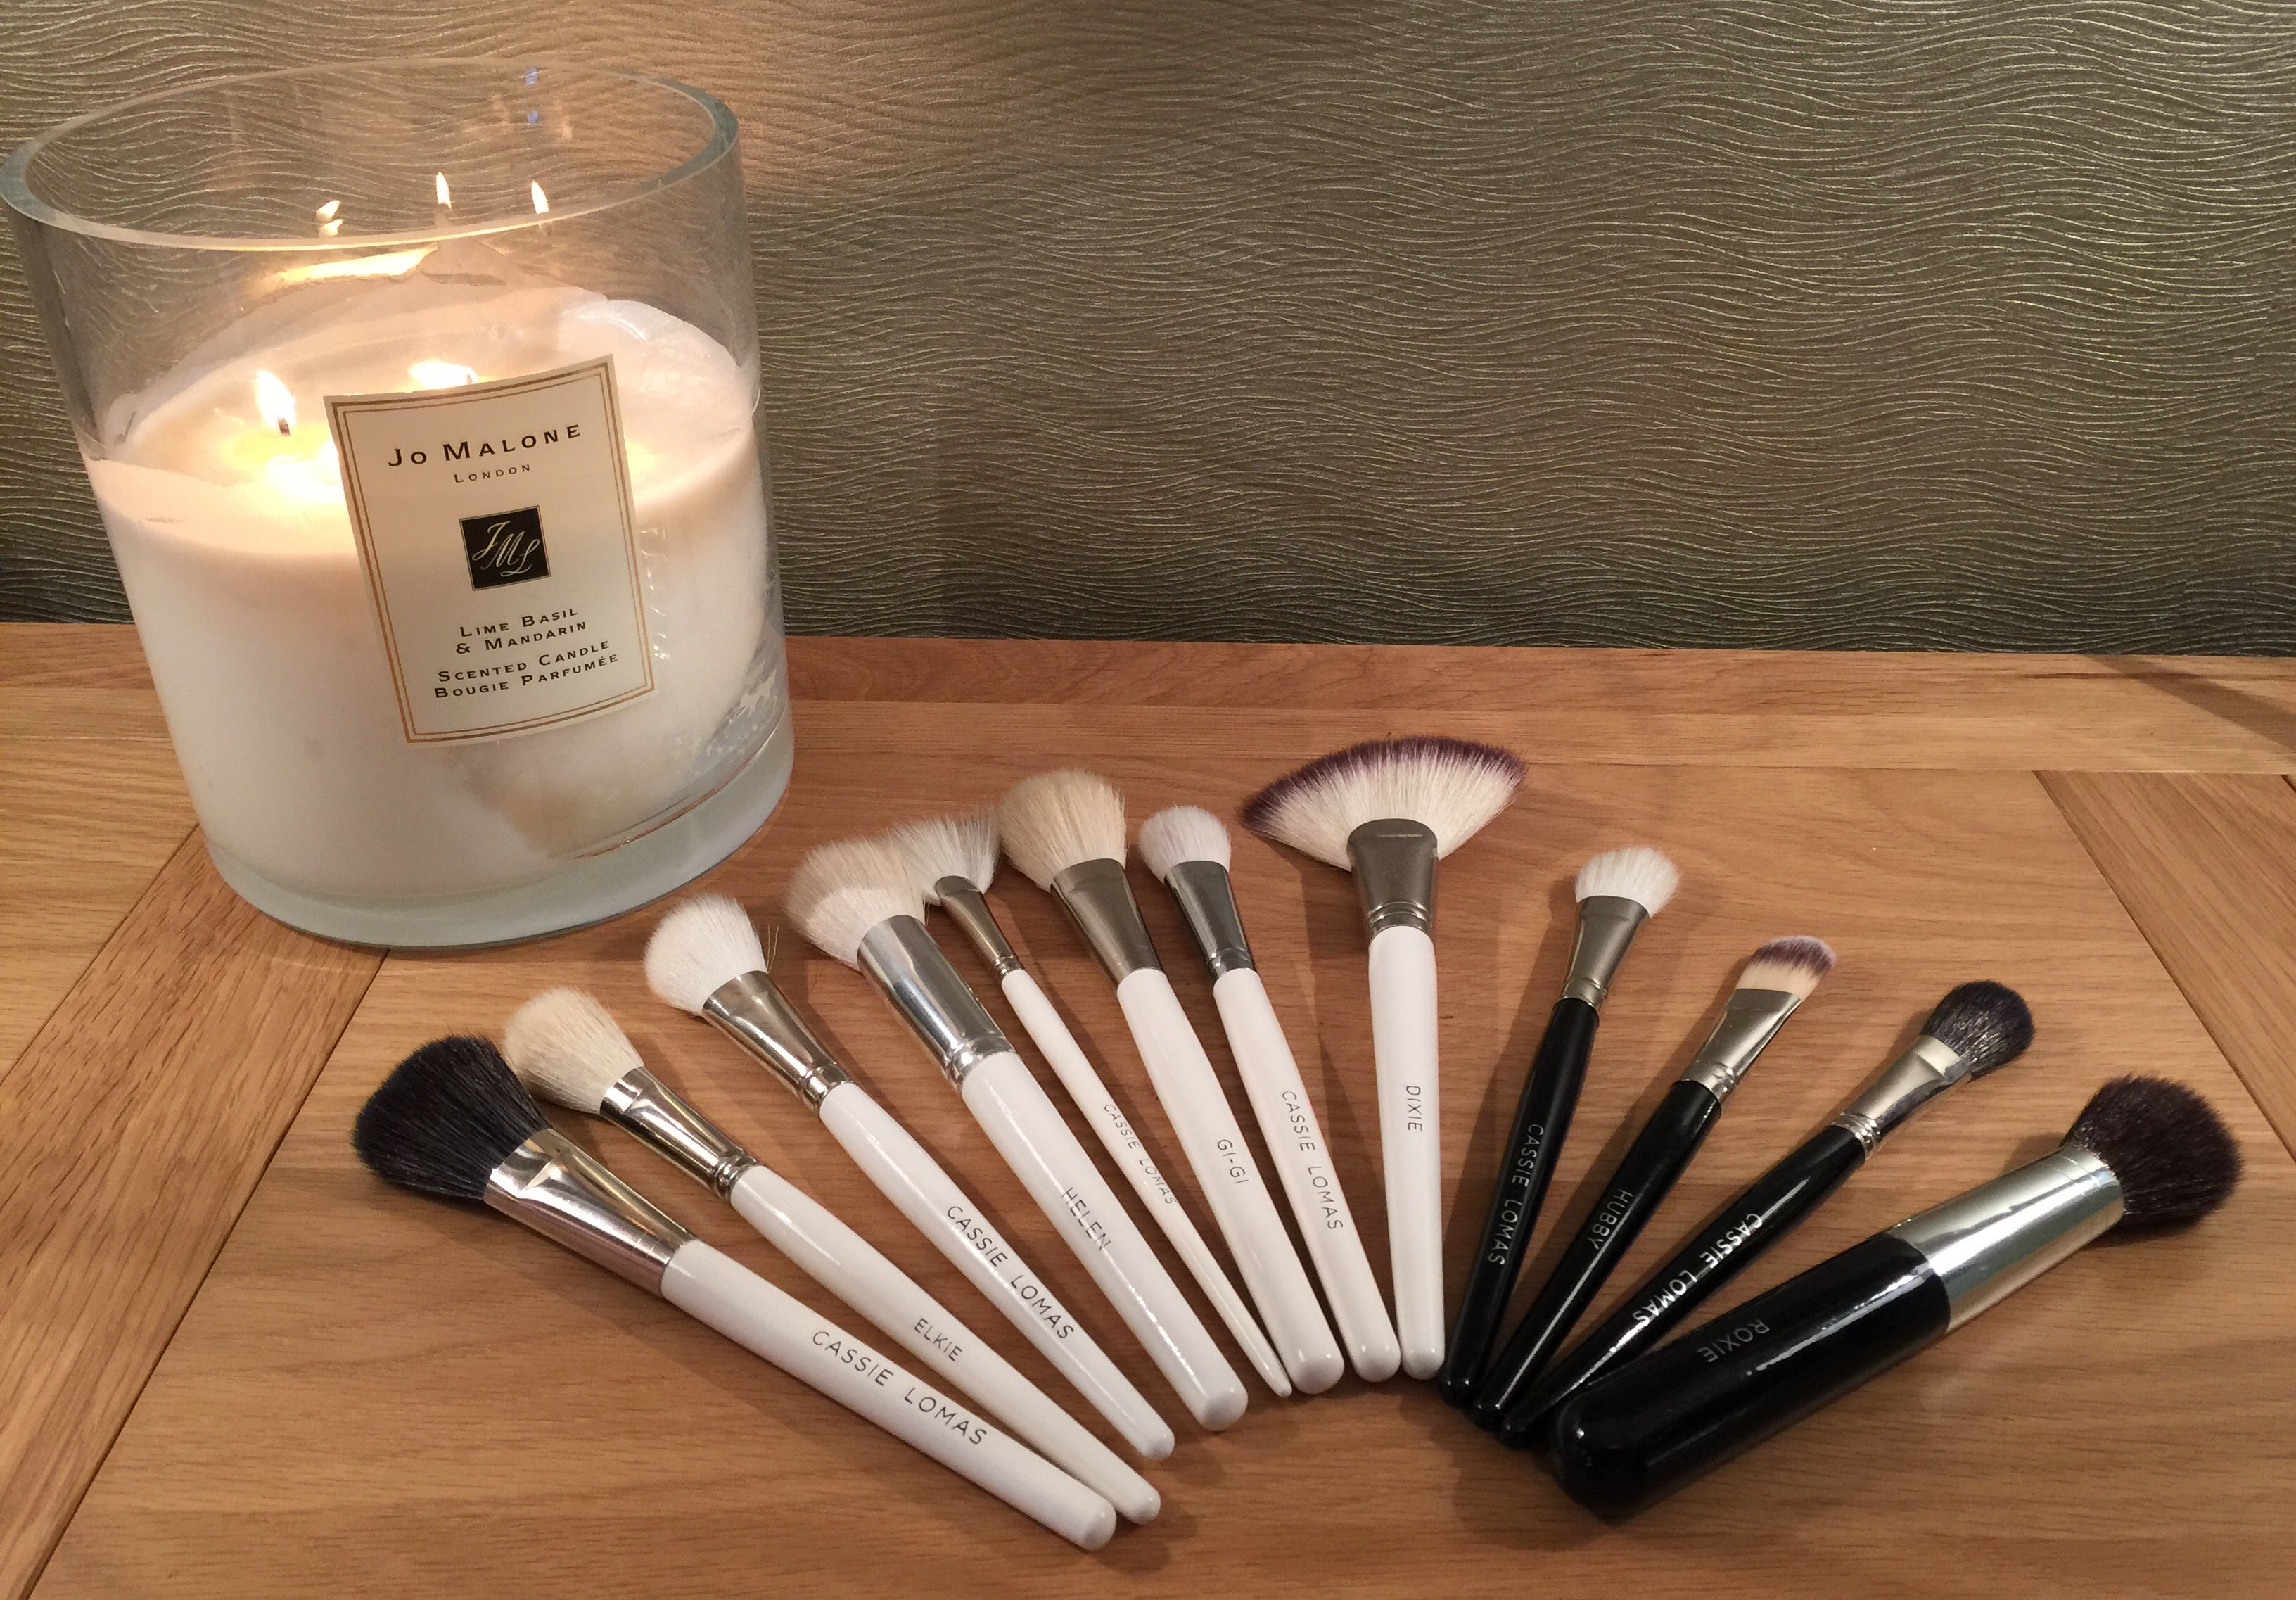 rainbow-of-brushes-and-jo-malone